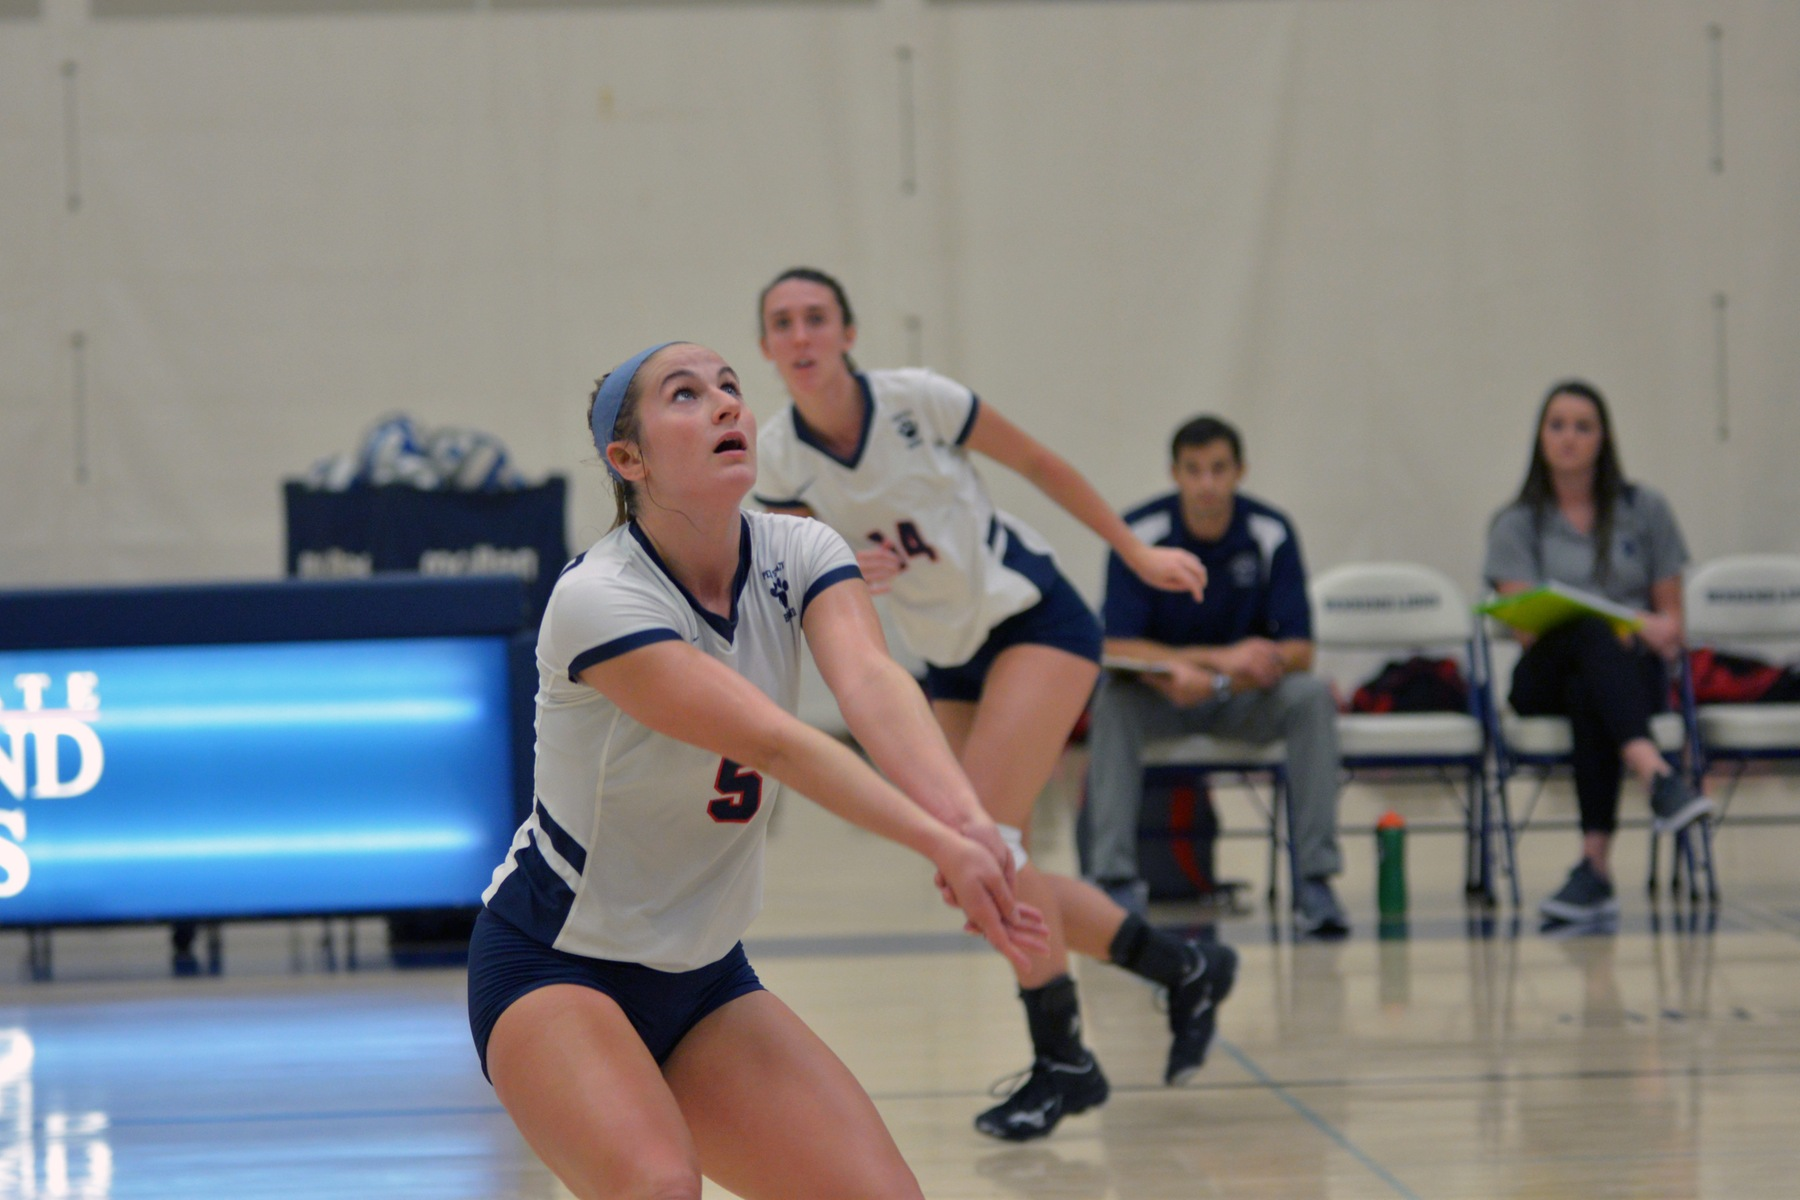 Irwin Named AMCC Volleyball Athlete of the Week